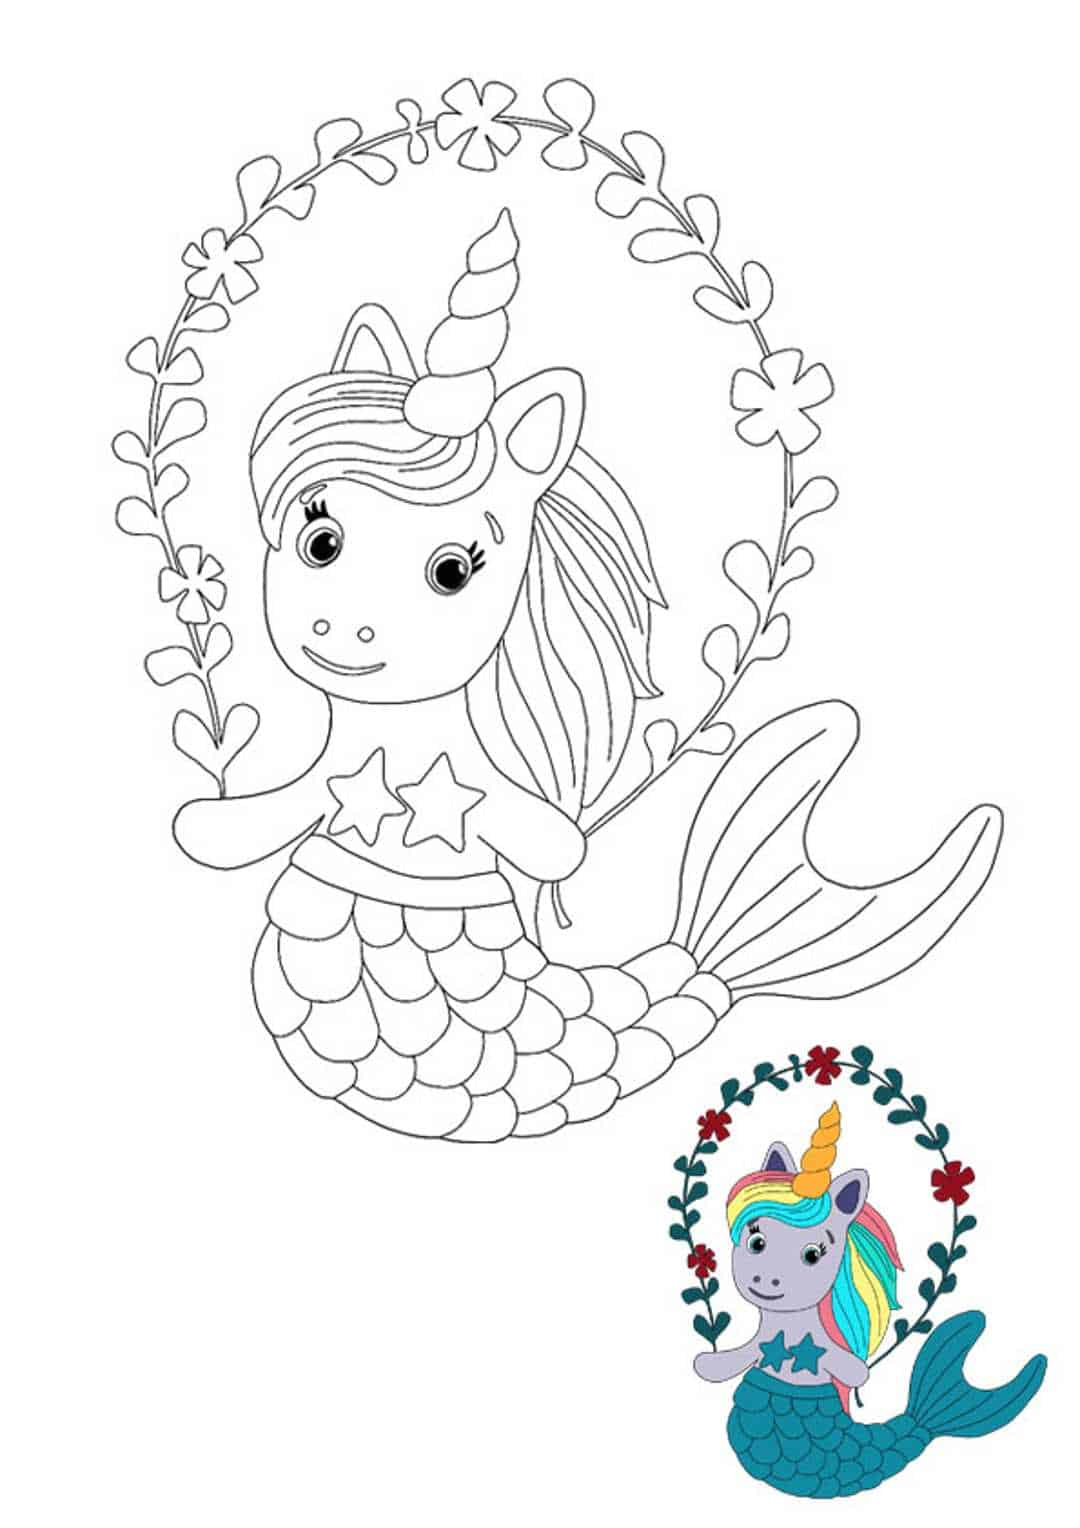 Little mermaid unicorn coloring page with sample